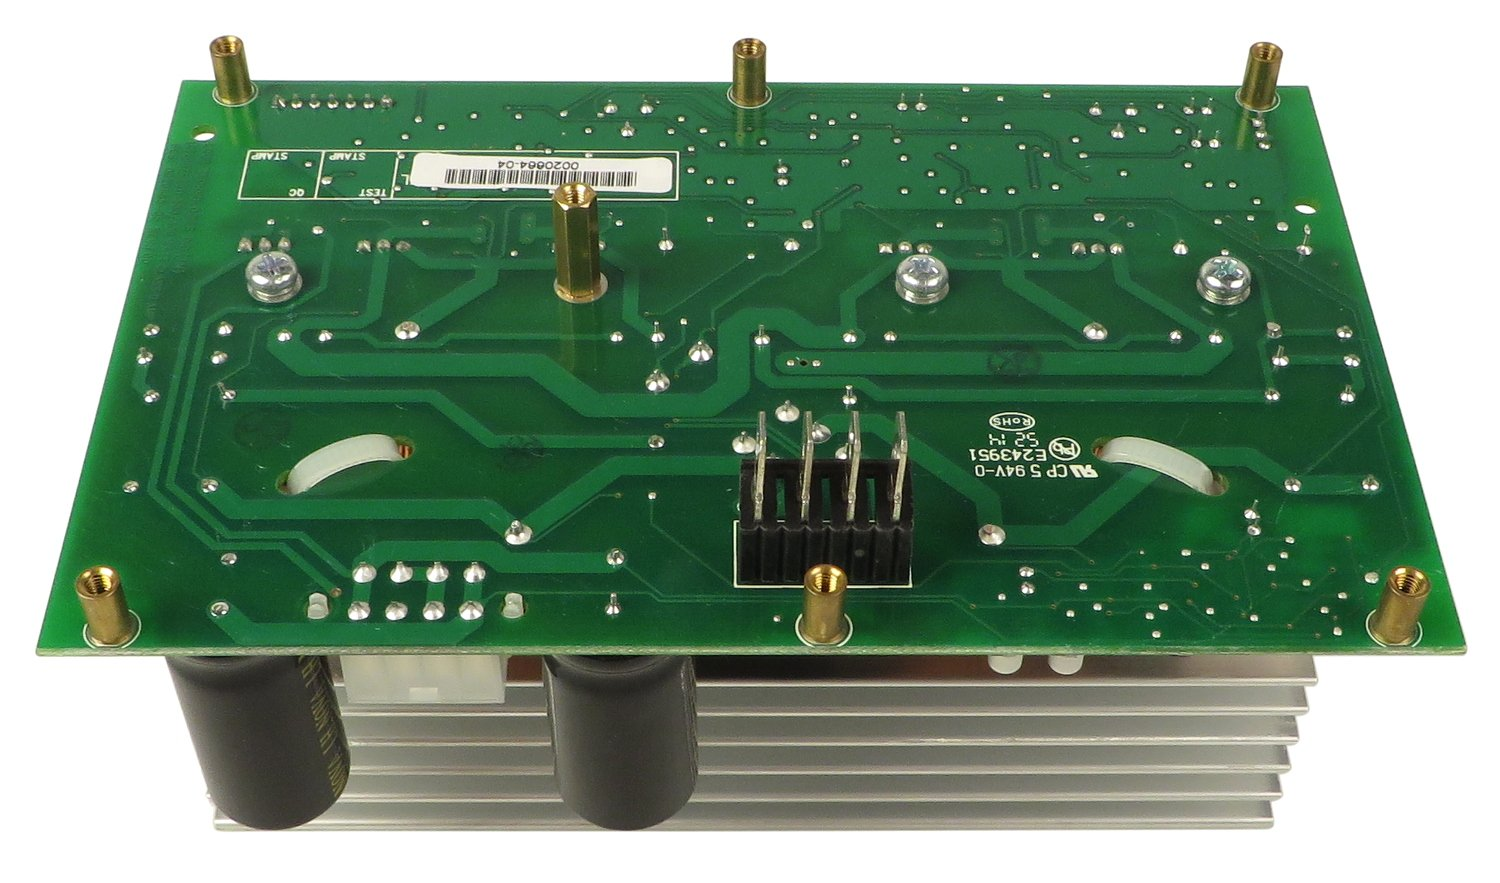 500W Class D Amp PCB Assembly for HD1501